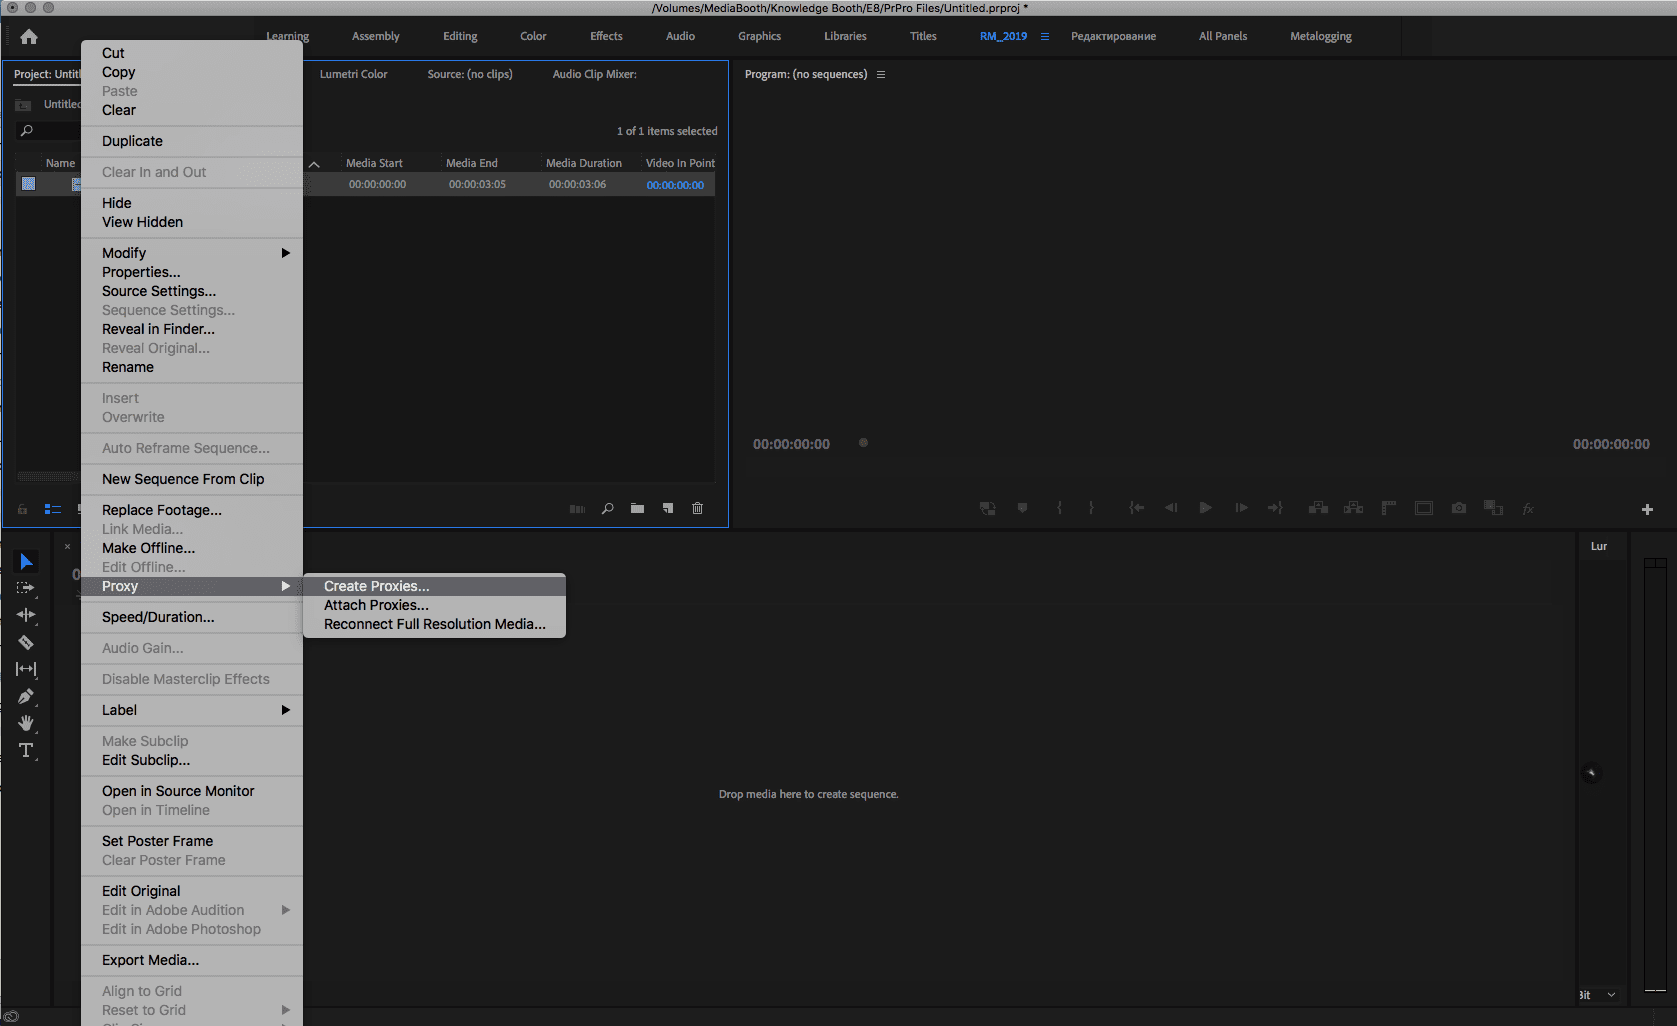 How to create proxies in premiere pro